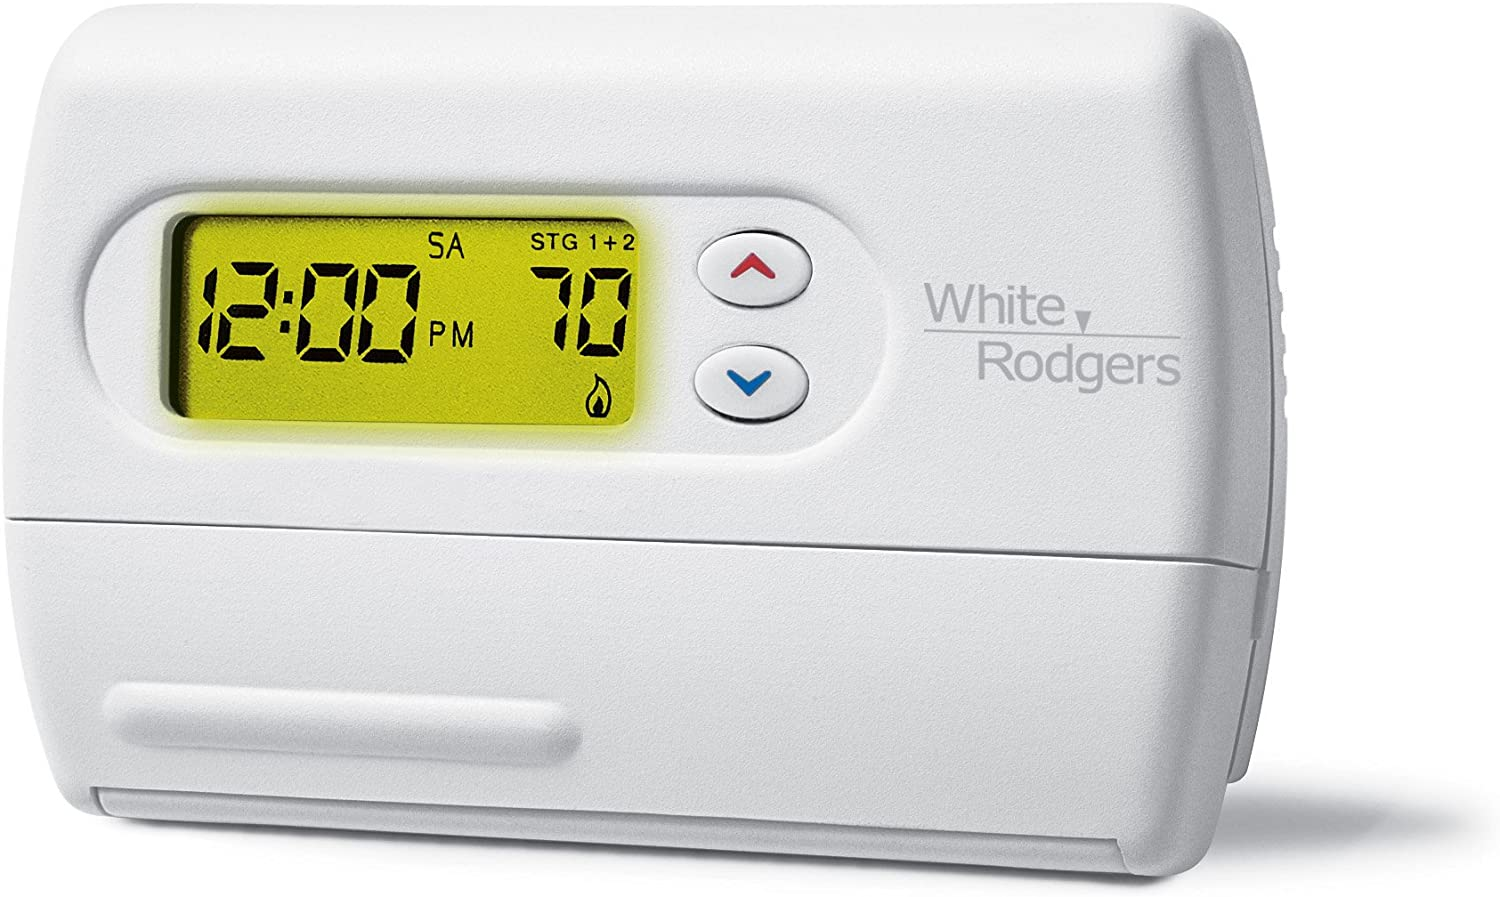 Emerson 1F85-277 Universal Programmable Thermostat with 3 Heat and 2 Cool Stages